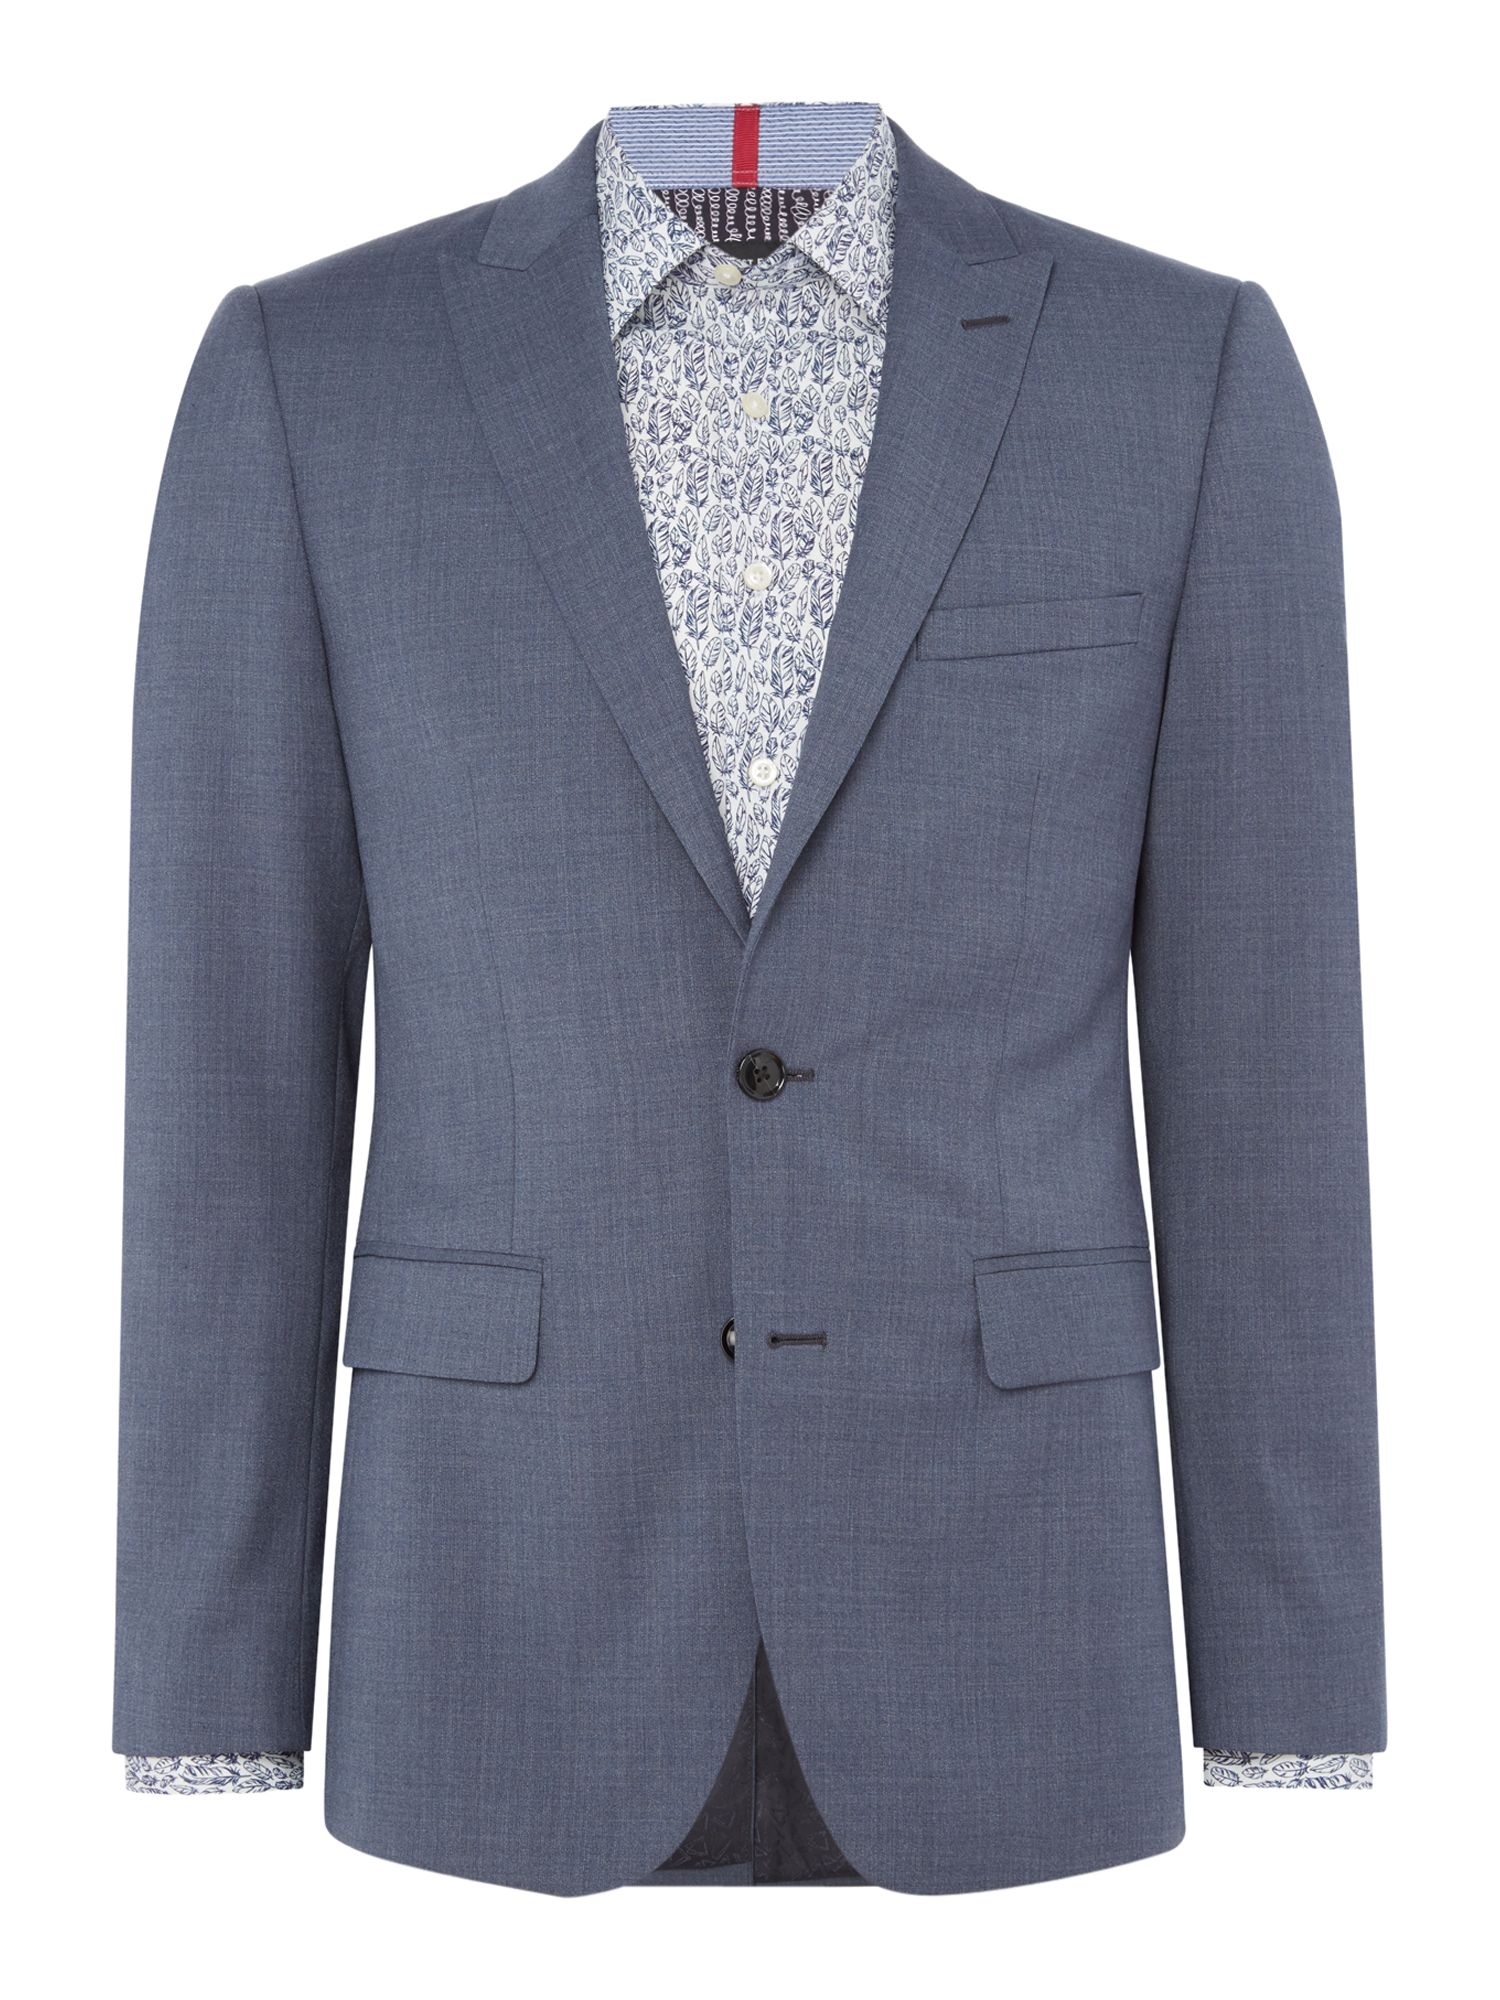 Men's Simon Carter Crepe Weave Suit, Slate Blue